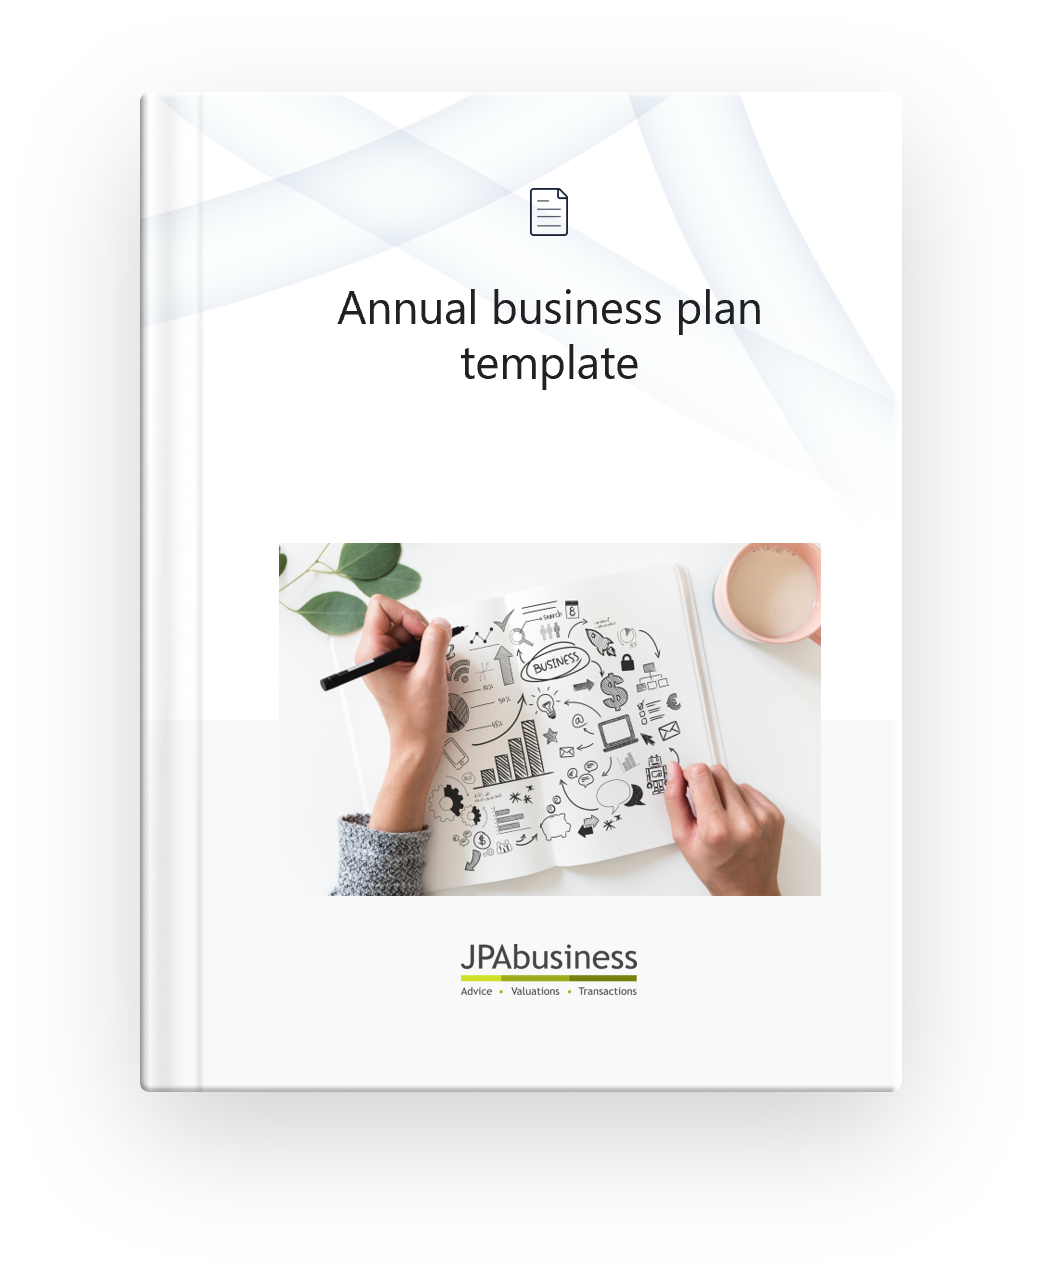 The annual business plan template